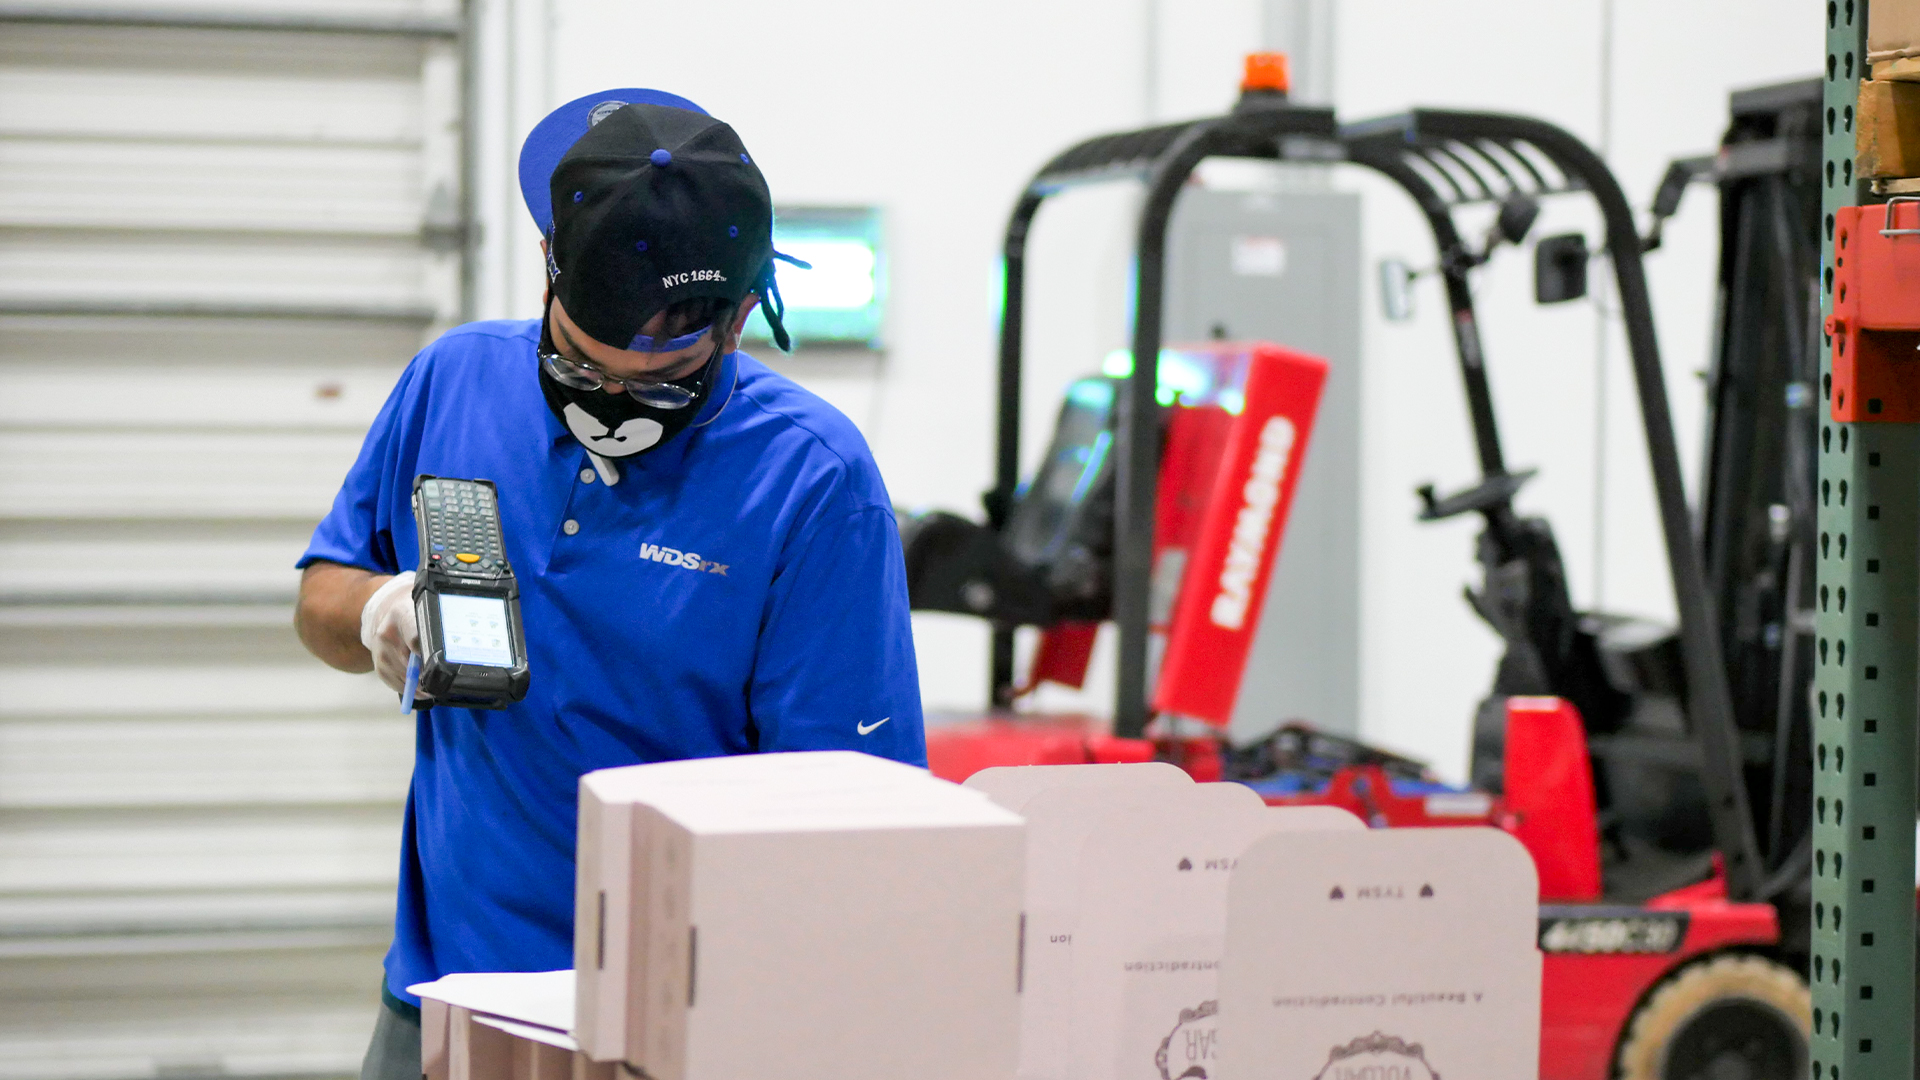 WDSrx Warehouse Technician picks an order for a cosmetics client.